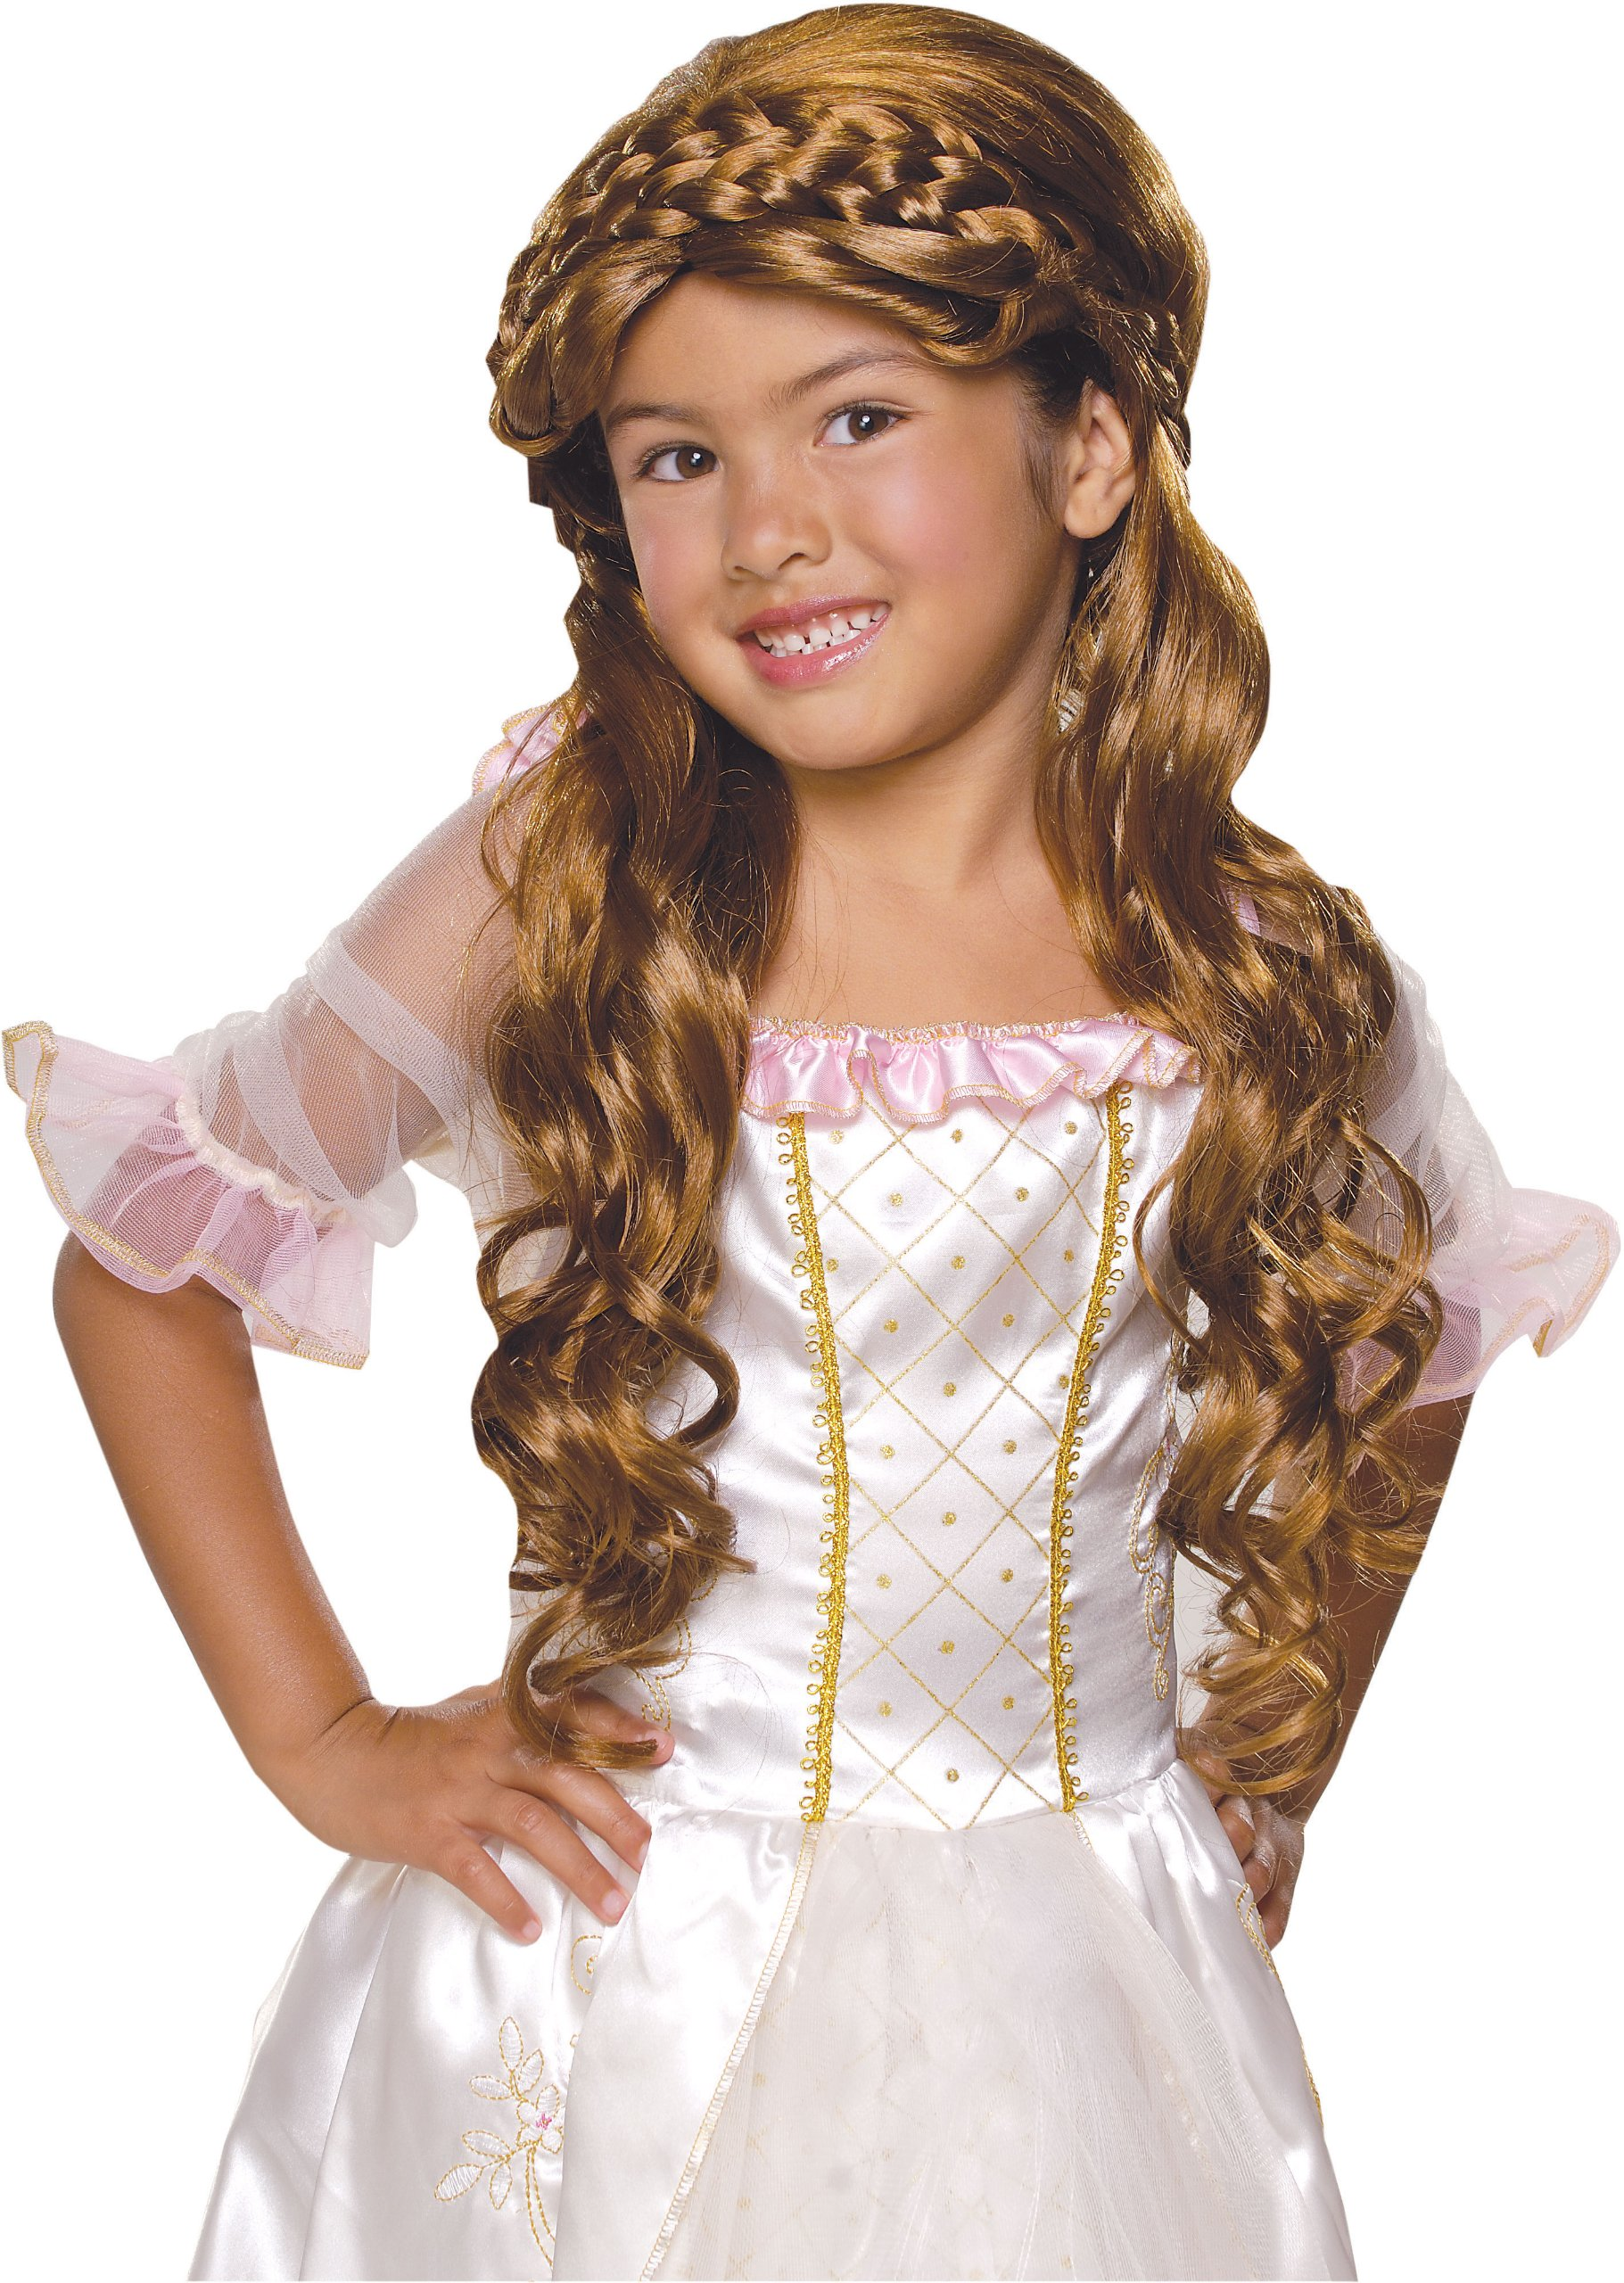 Rubie's Enchanted Princess Child's Costume Wig, Brunette